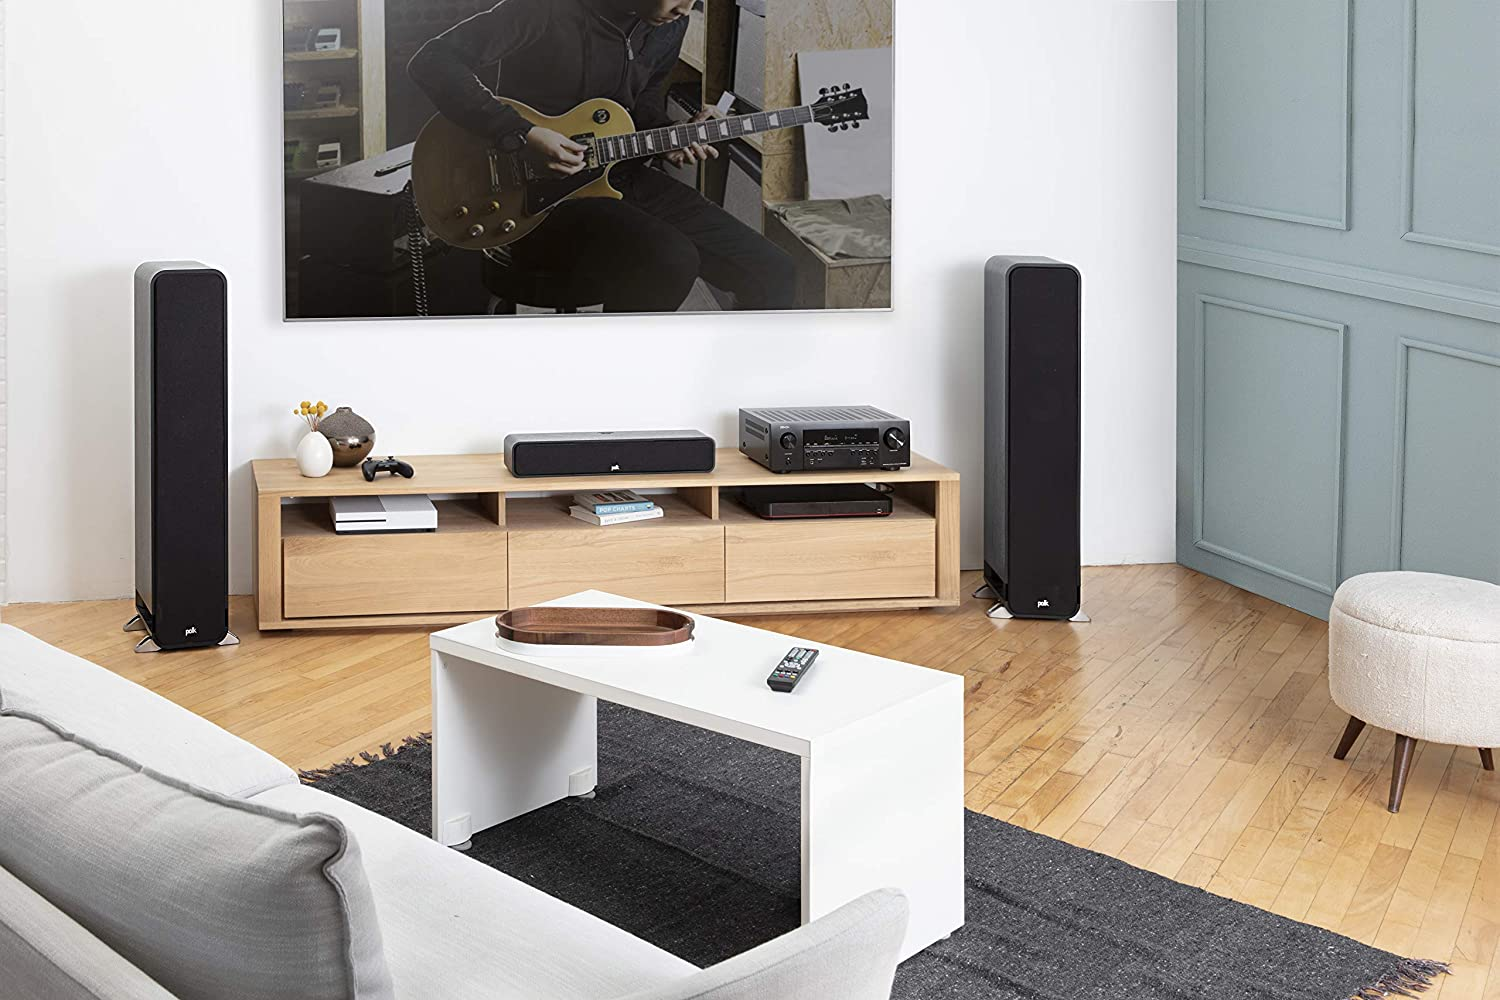 5.2 Channel 4K Ultra HD Home Theater Surround Sound and Music Streaming System Denon AVR-S640H Audio Video Receiver Airplay Alexa and HEOS Wireless Speaker Expansion Built In Bluetooth Wi-Fi